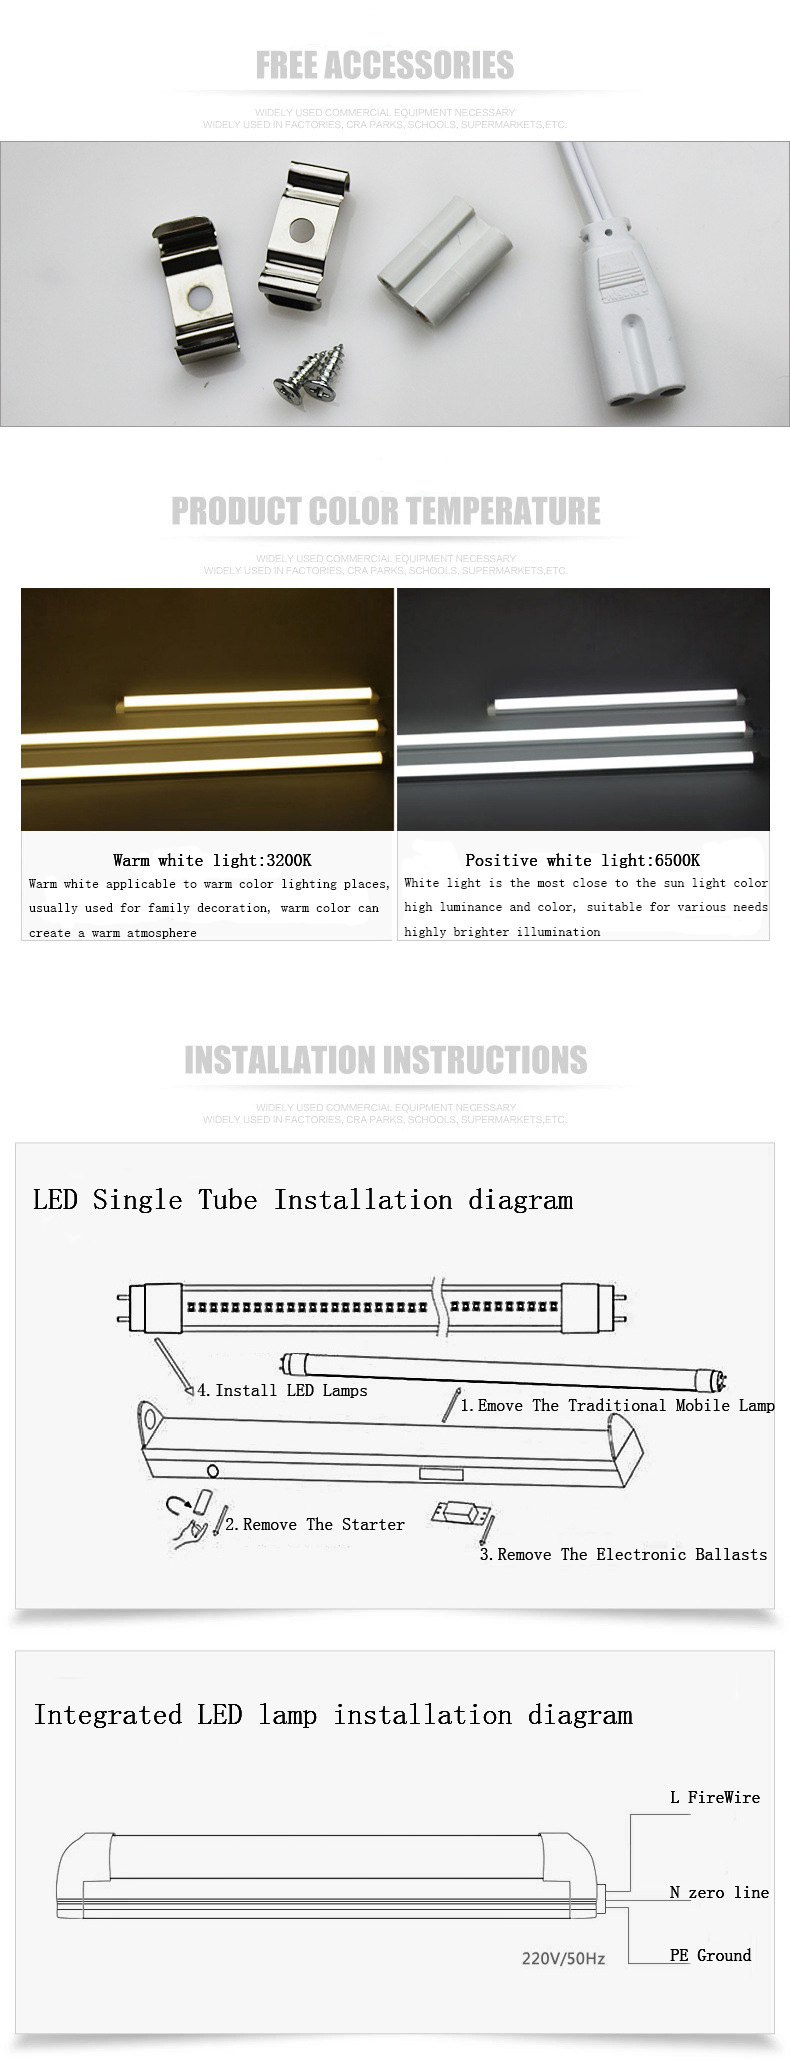 240v Dimmable 6000k 14w 900mm T8 2835 Smd Led Tube Lamp China 2014 Hot Circuit 4ft Light Diagram Contact Us